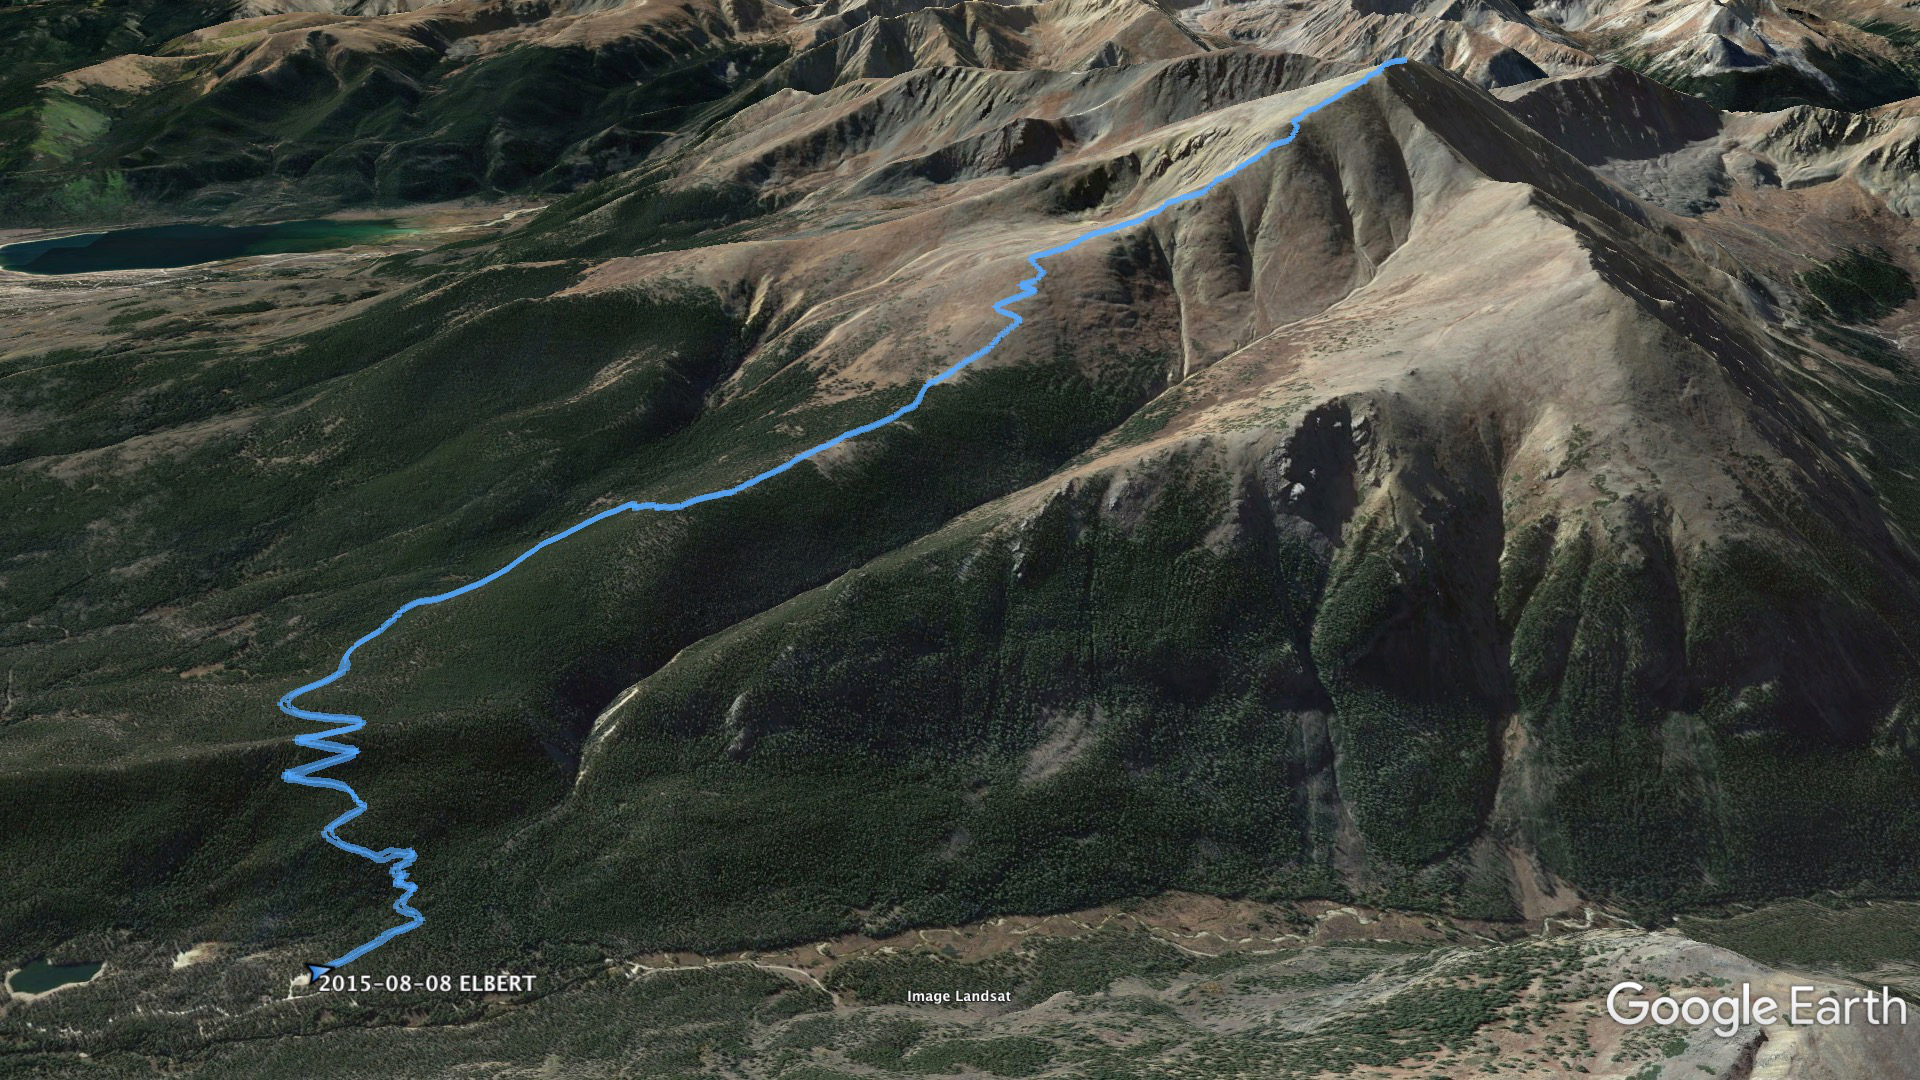 Aerial view of the summit path for Mount Elbert